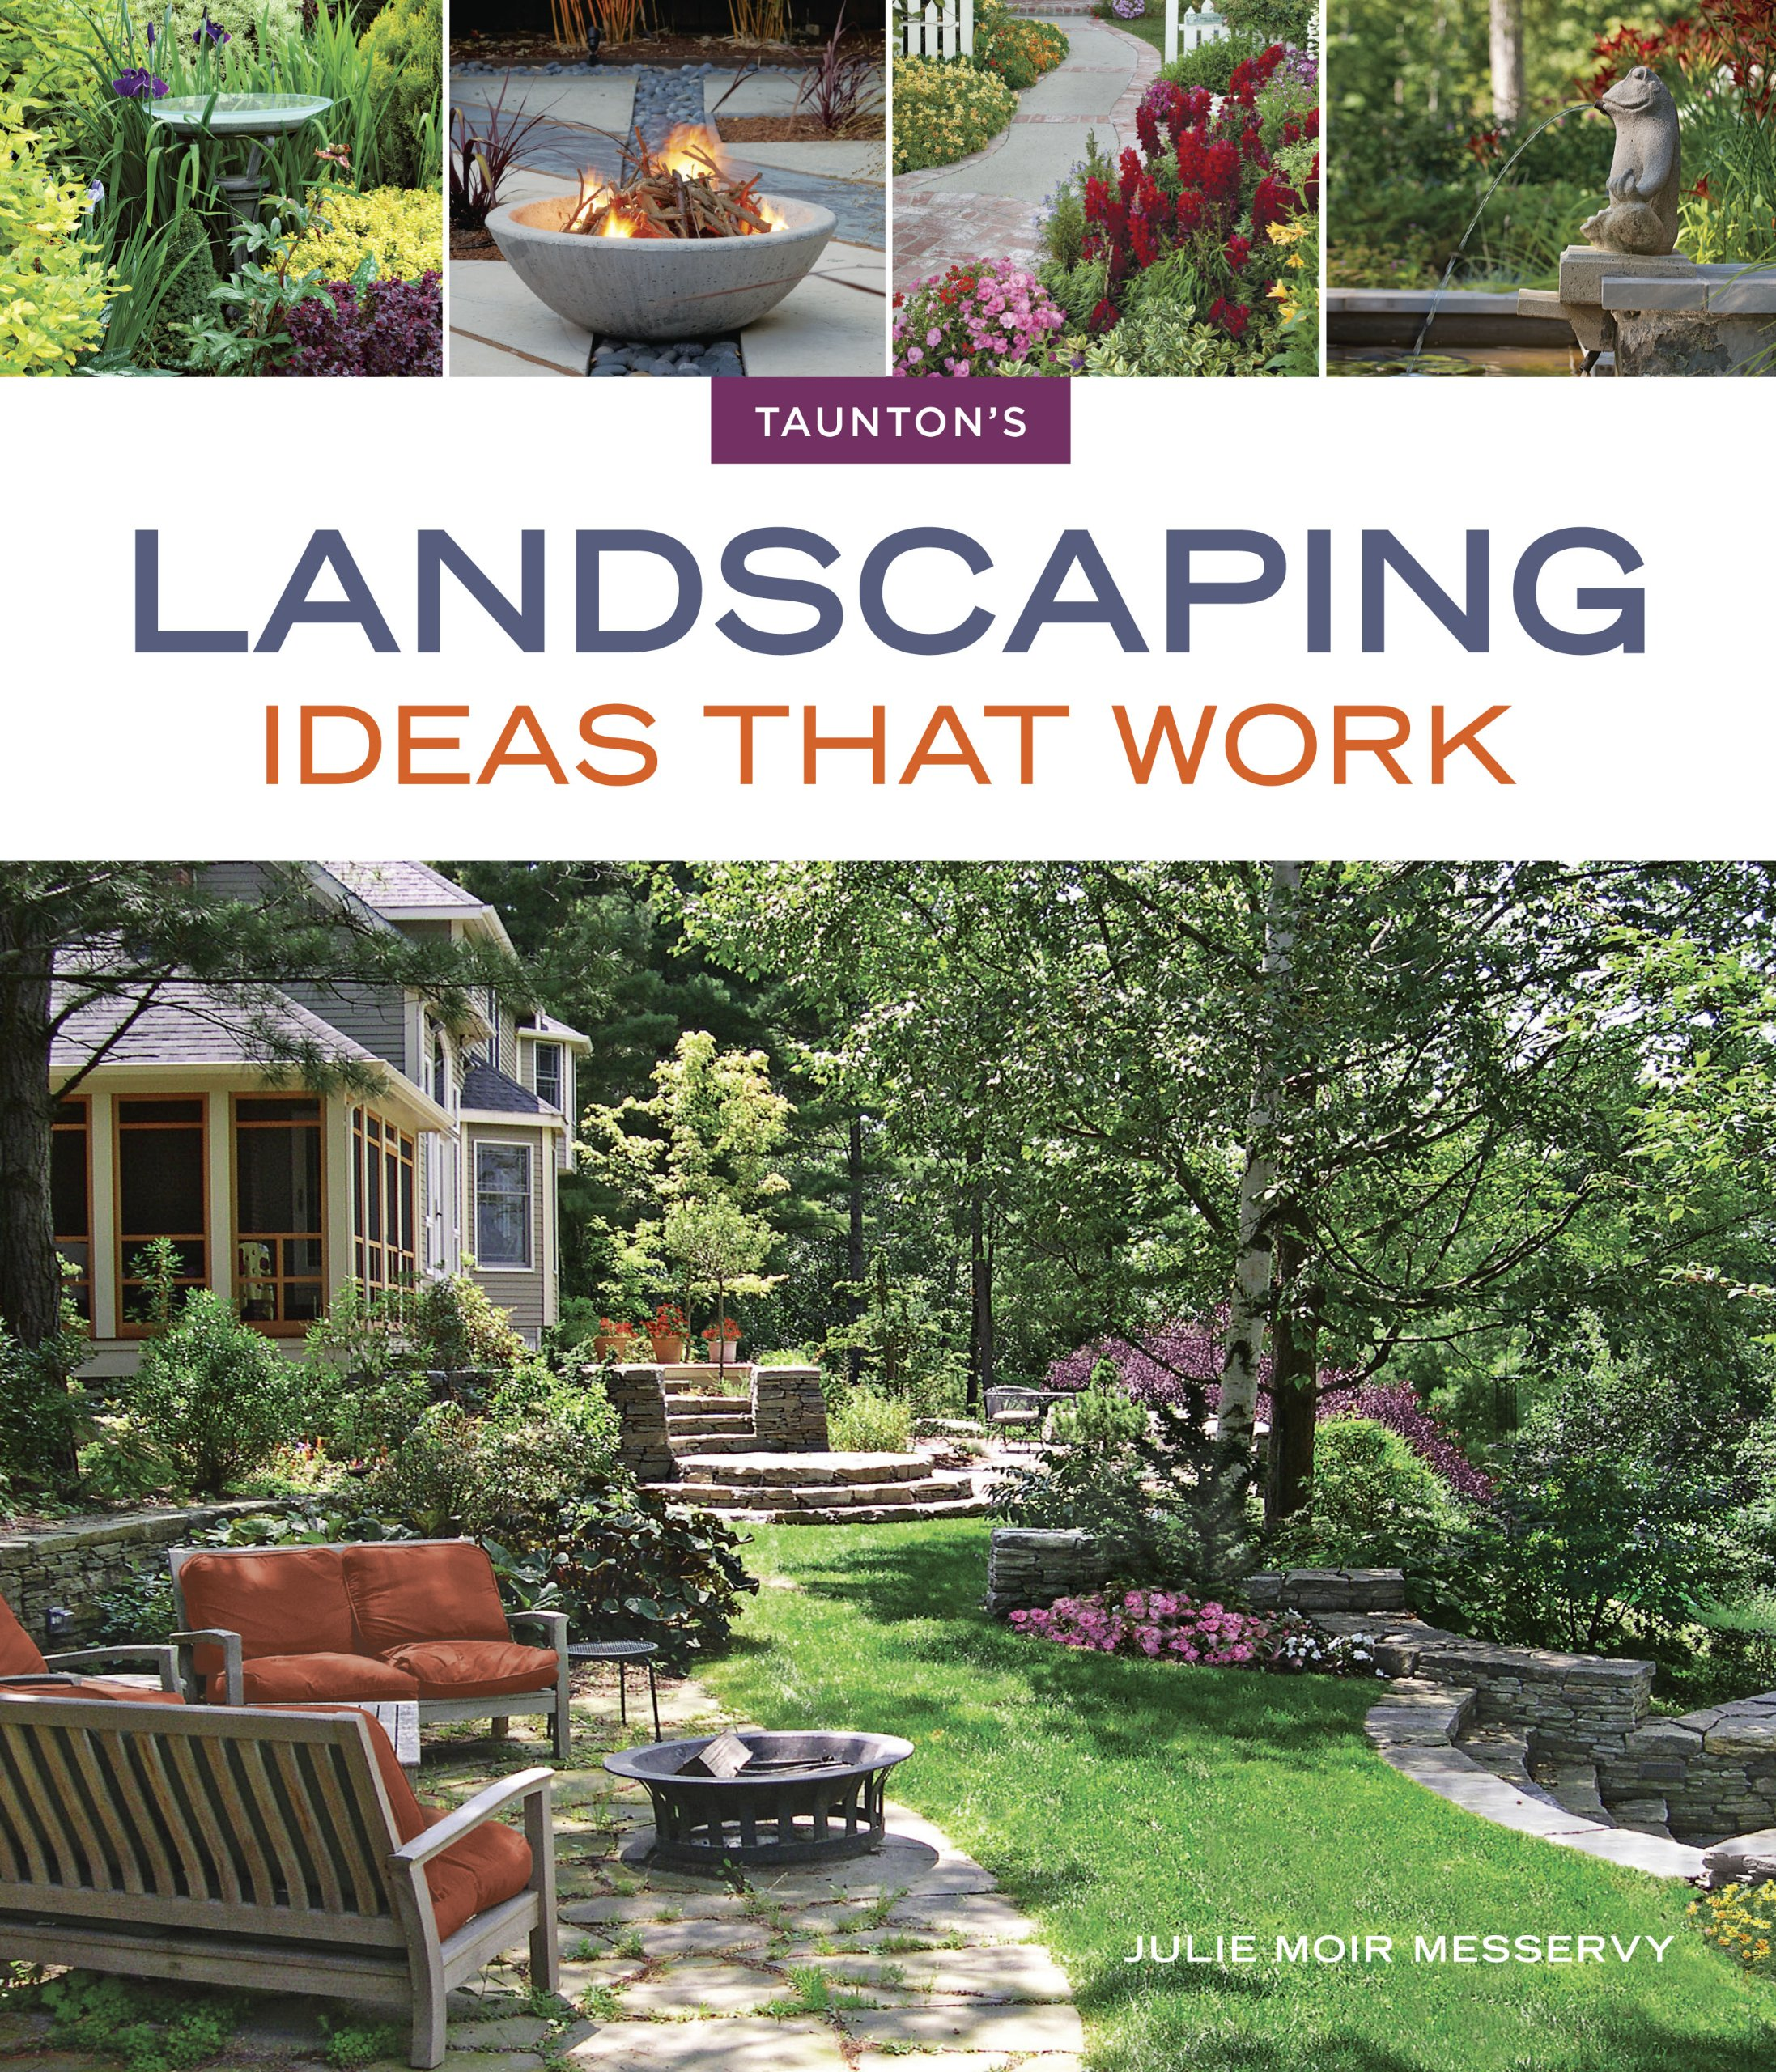 Landscaping Ideas that Work Tauntons product image